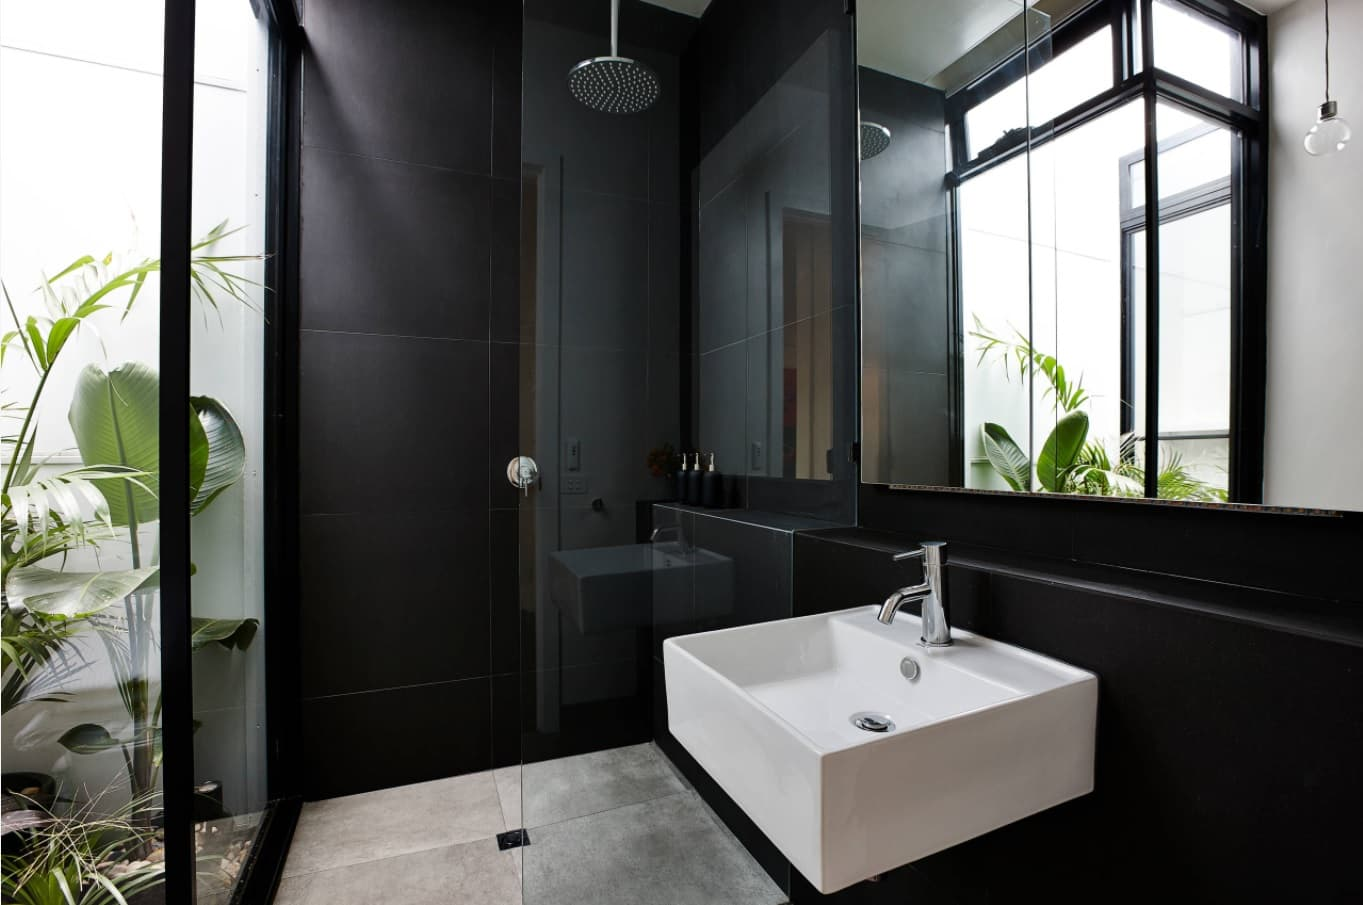 From Basic to Fancy: How to Upgrade Your Bathroom with New Trending Décor Ideas. Fully black walls and white urban sink in the natural lit area